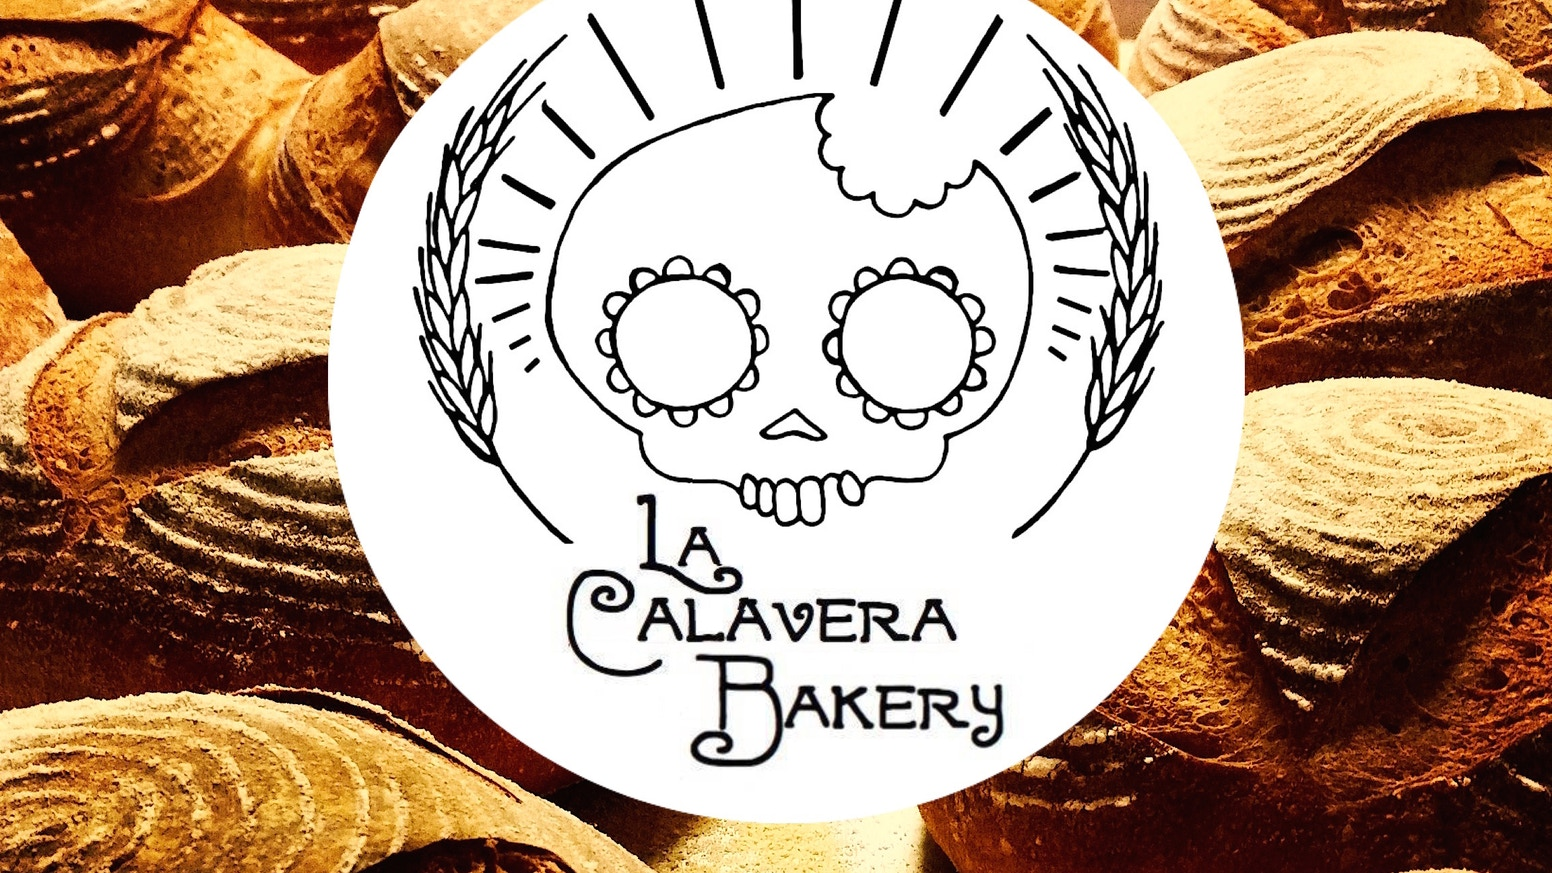 We hope to raise money to buy the oven that will help us grow our small bakery business and make better bread than ever before.